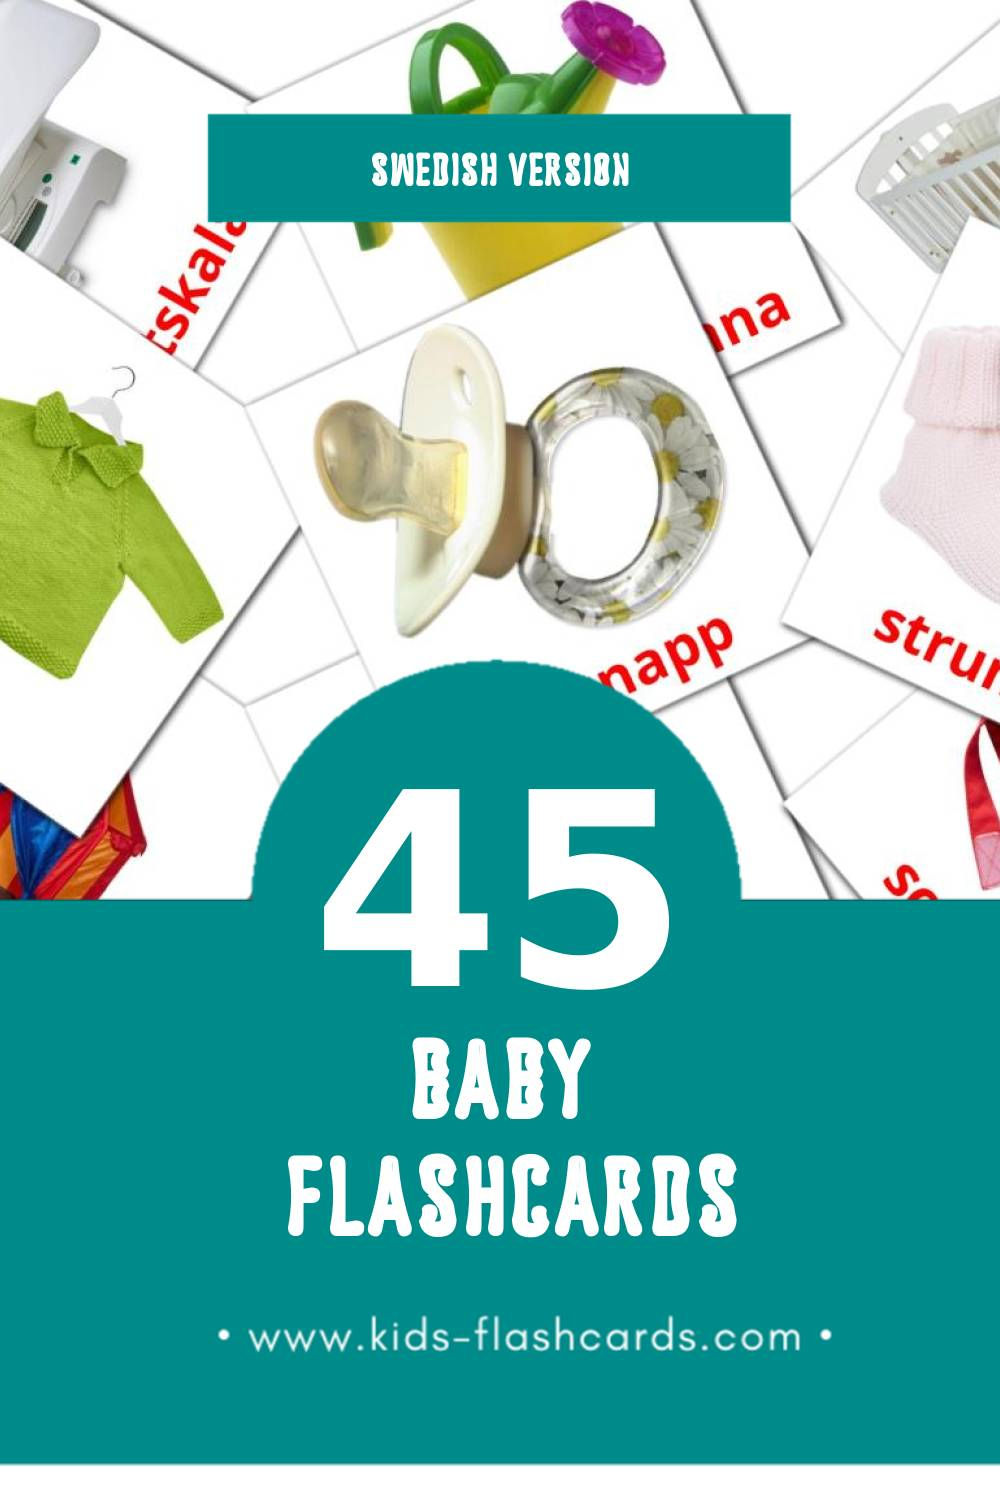 Visual Bebis Flashcards for Toddlers (45 cards in Swedish)